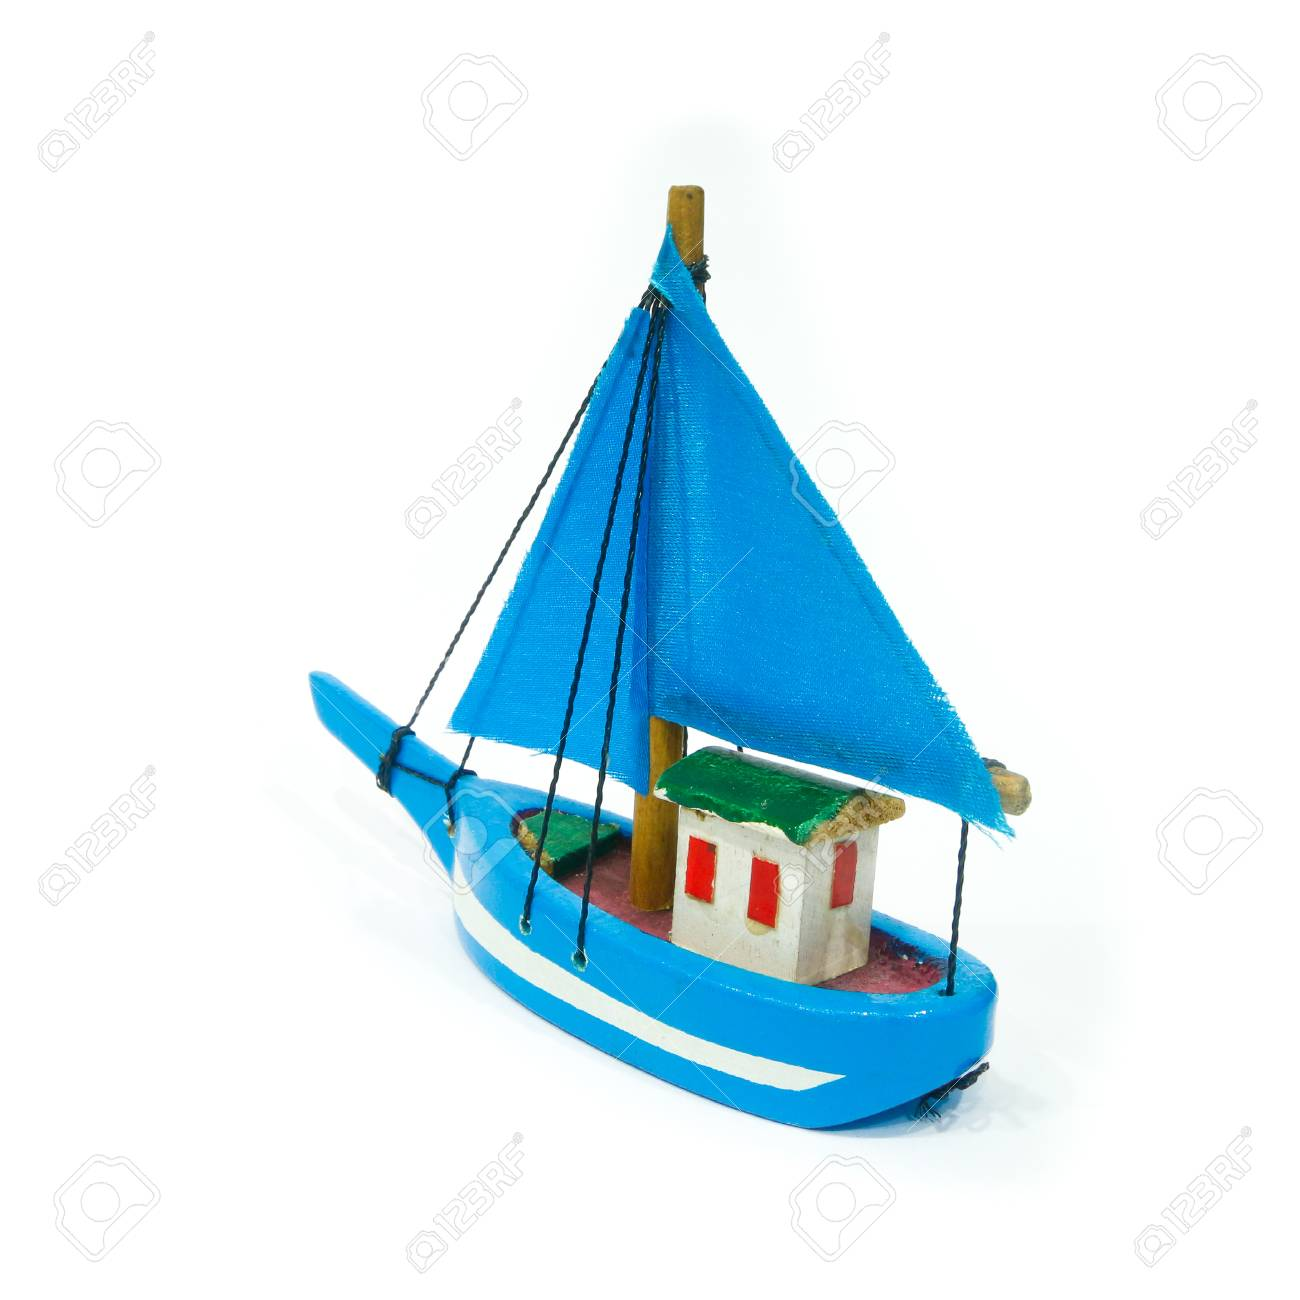 boat toy blue sail